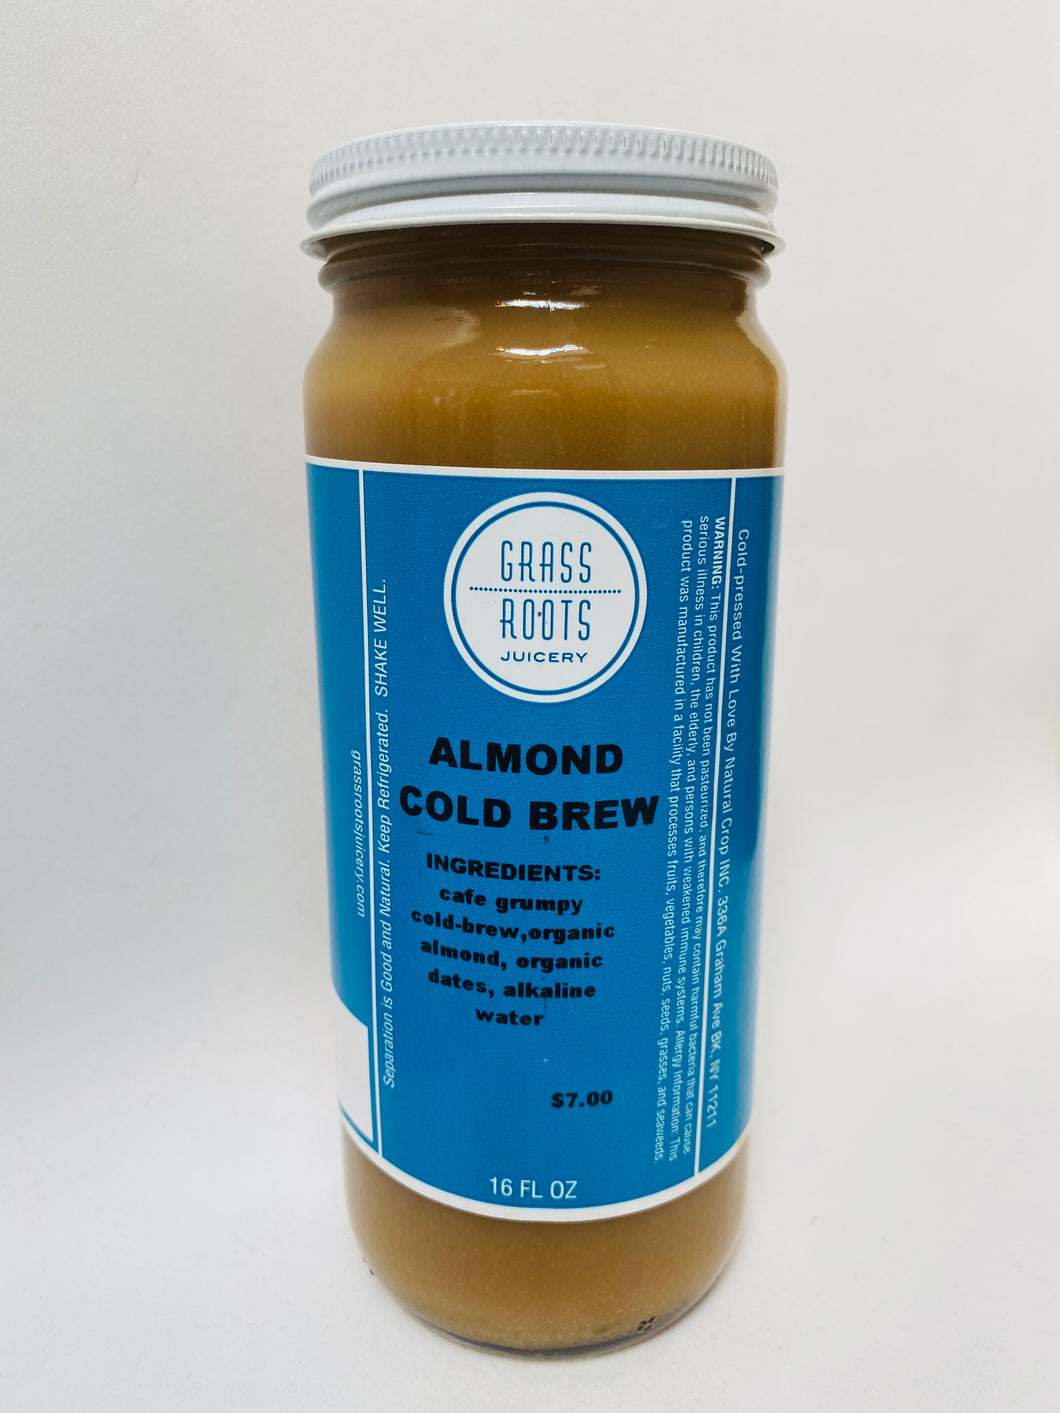 Almond Milk Cold Brew